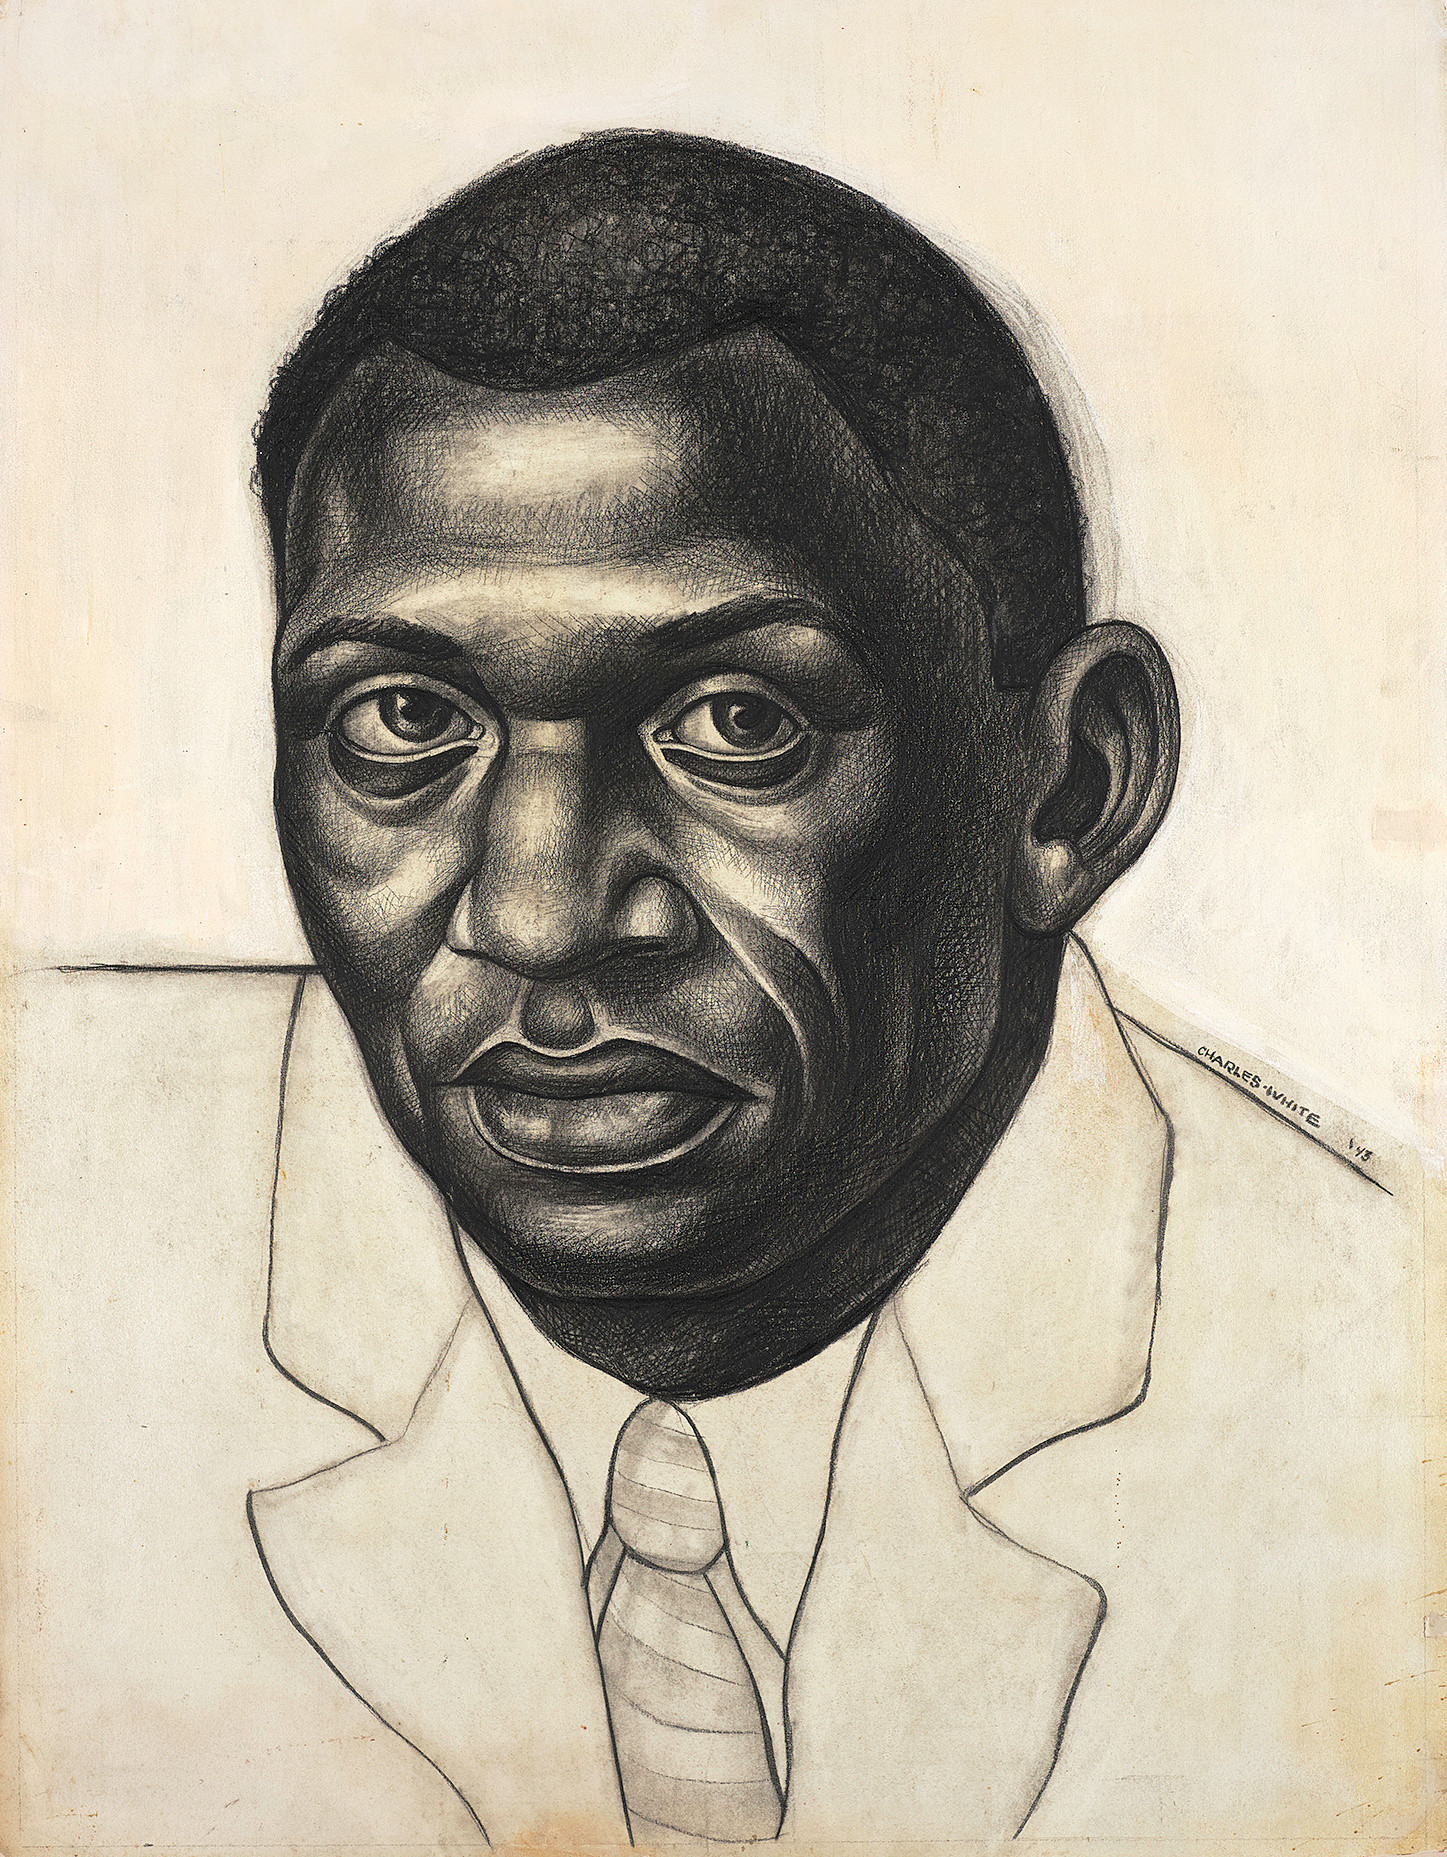 "Charles White. _Paul Robeson (Study for Contribution of the Negro to Democracy in America)_. 1942-43. Carbon pencil over charcoal, with additions and corrections in white gouache, and border in carbon pencil, on cream drawing board. 24 7/8 × 19 1/16"" (63.2 × 48.4 cm). Princeton University Art Museum. Museum purchase, Kathleen Compton Sherrerd Fund for Acquisitions in American Art. © The Charles White Archives/ Photo: Art Resource, NY"